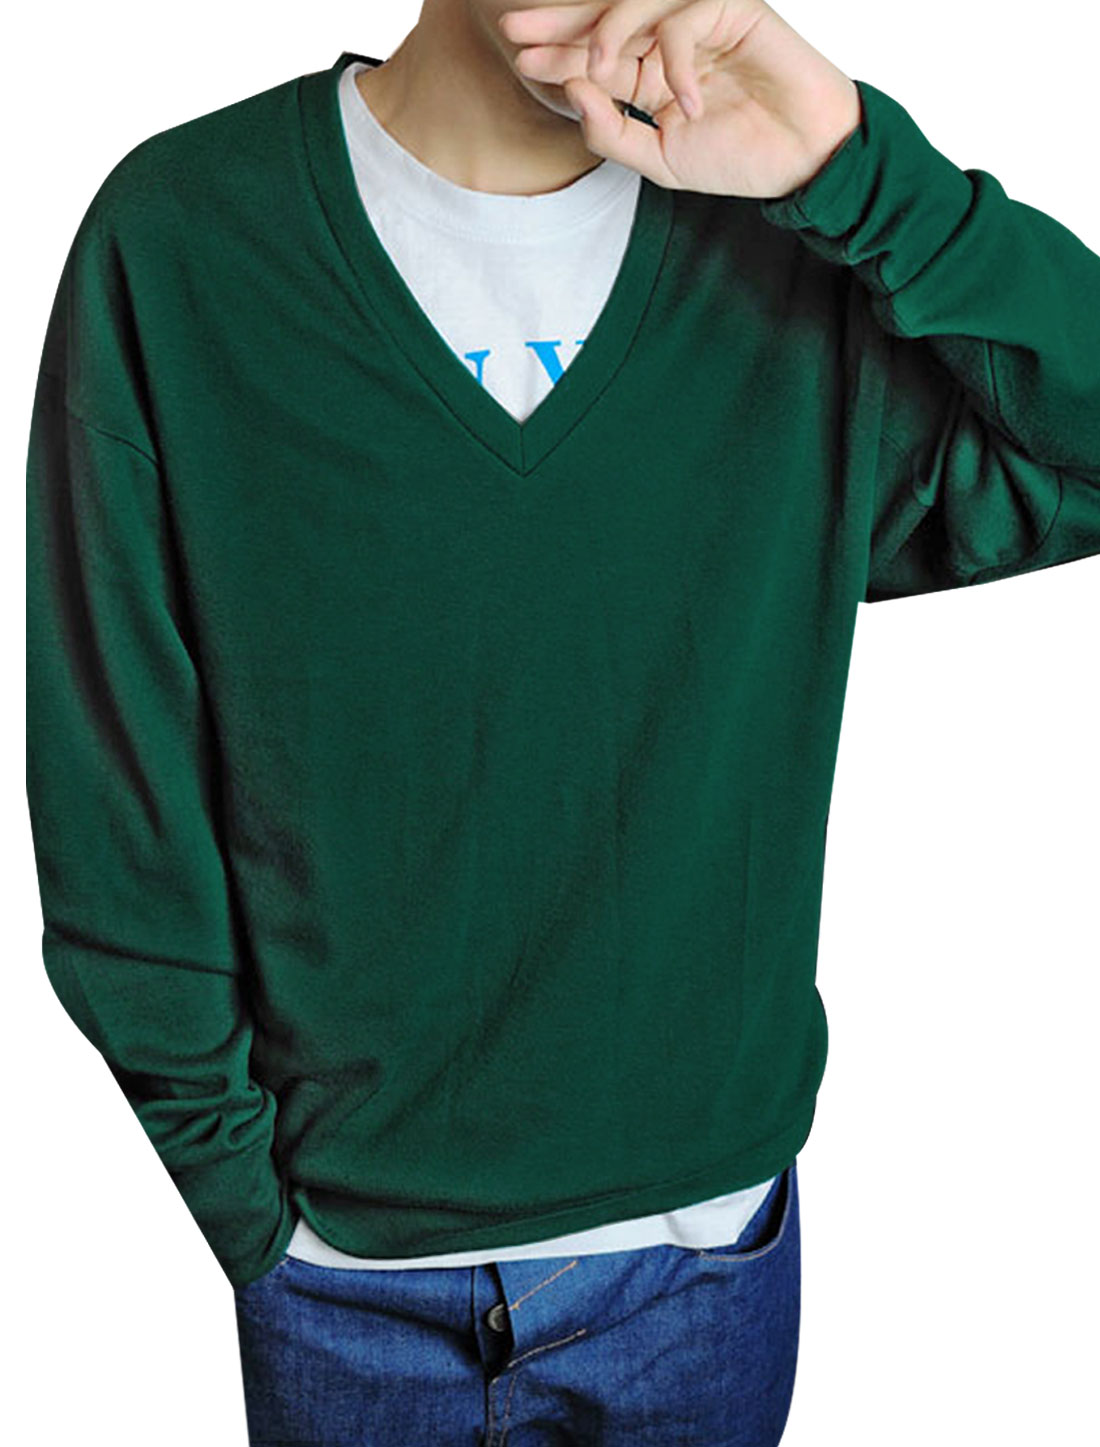 Mens Dark Green V Neck Long Sleeve Solid Color Stretchy Simple Top Shirt XS